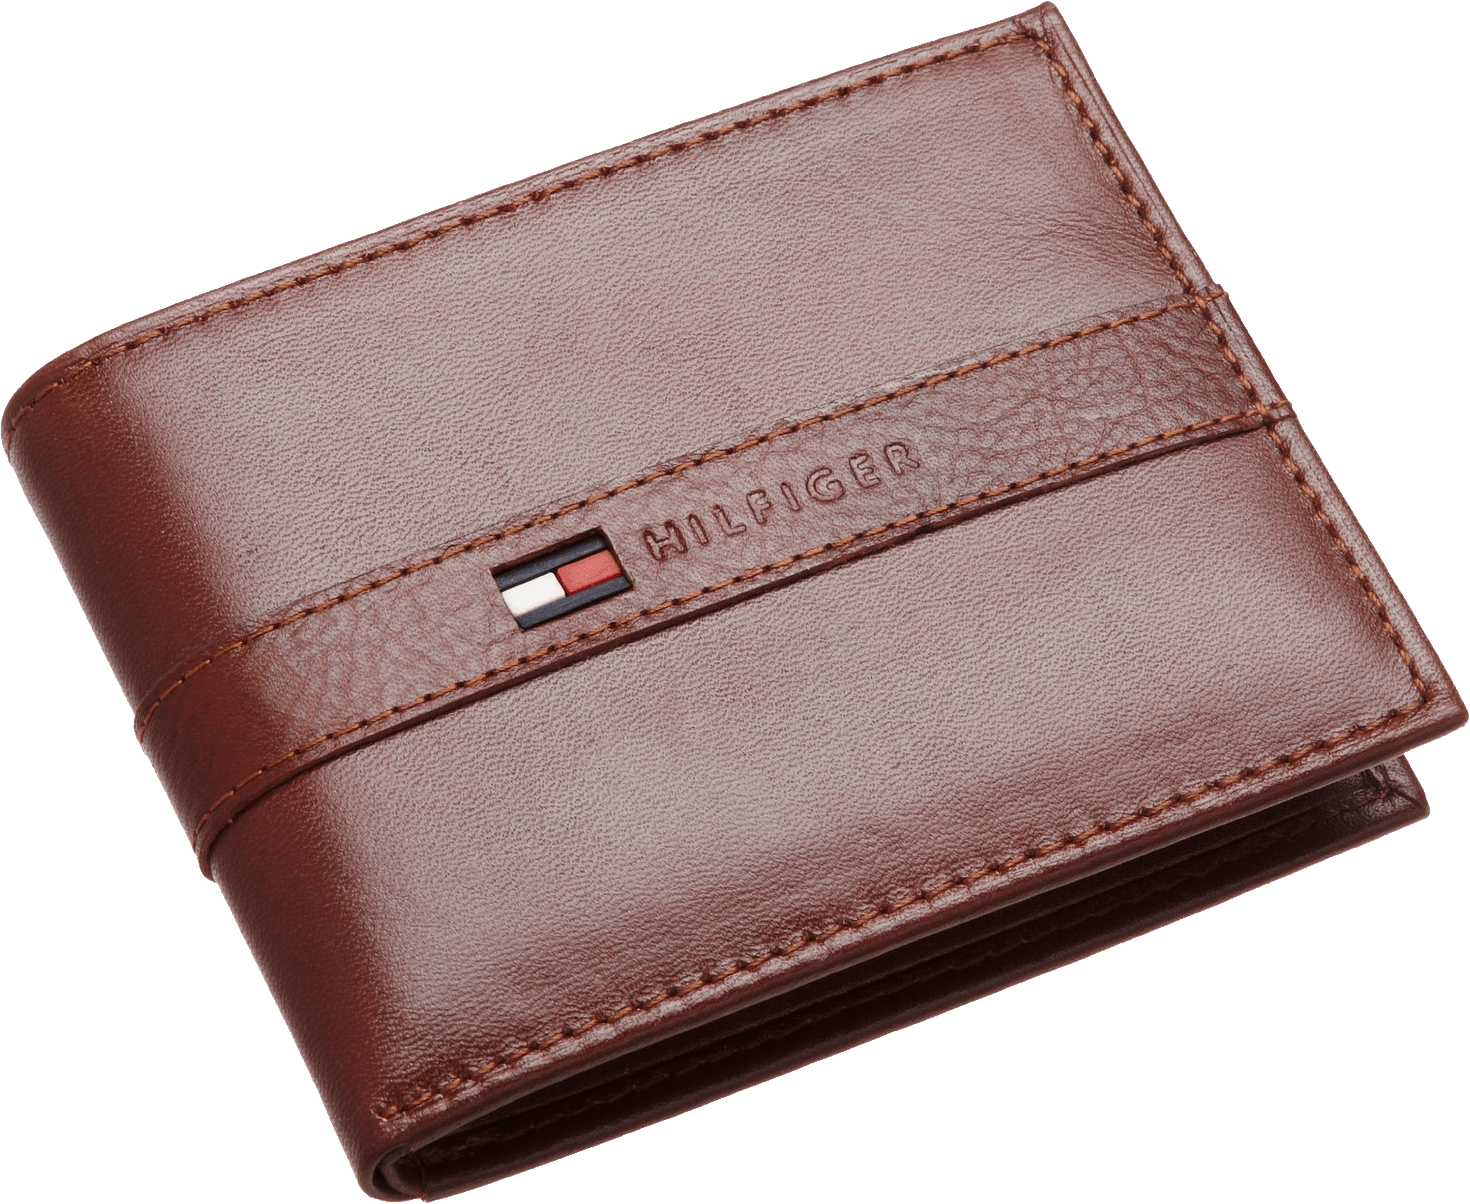 Brown Leather Wallet Png Image PNG Image